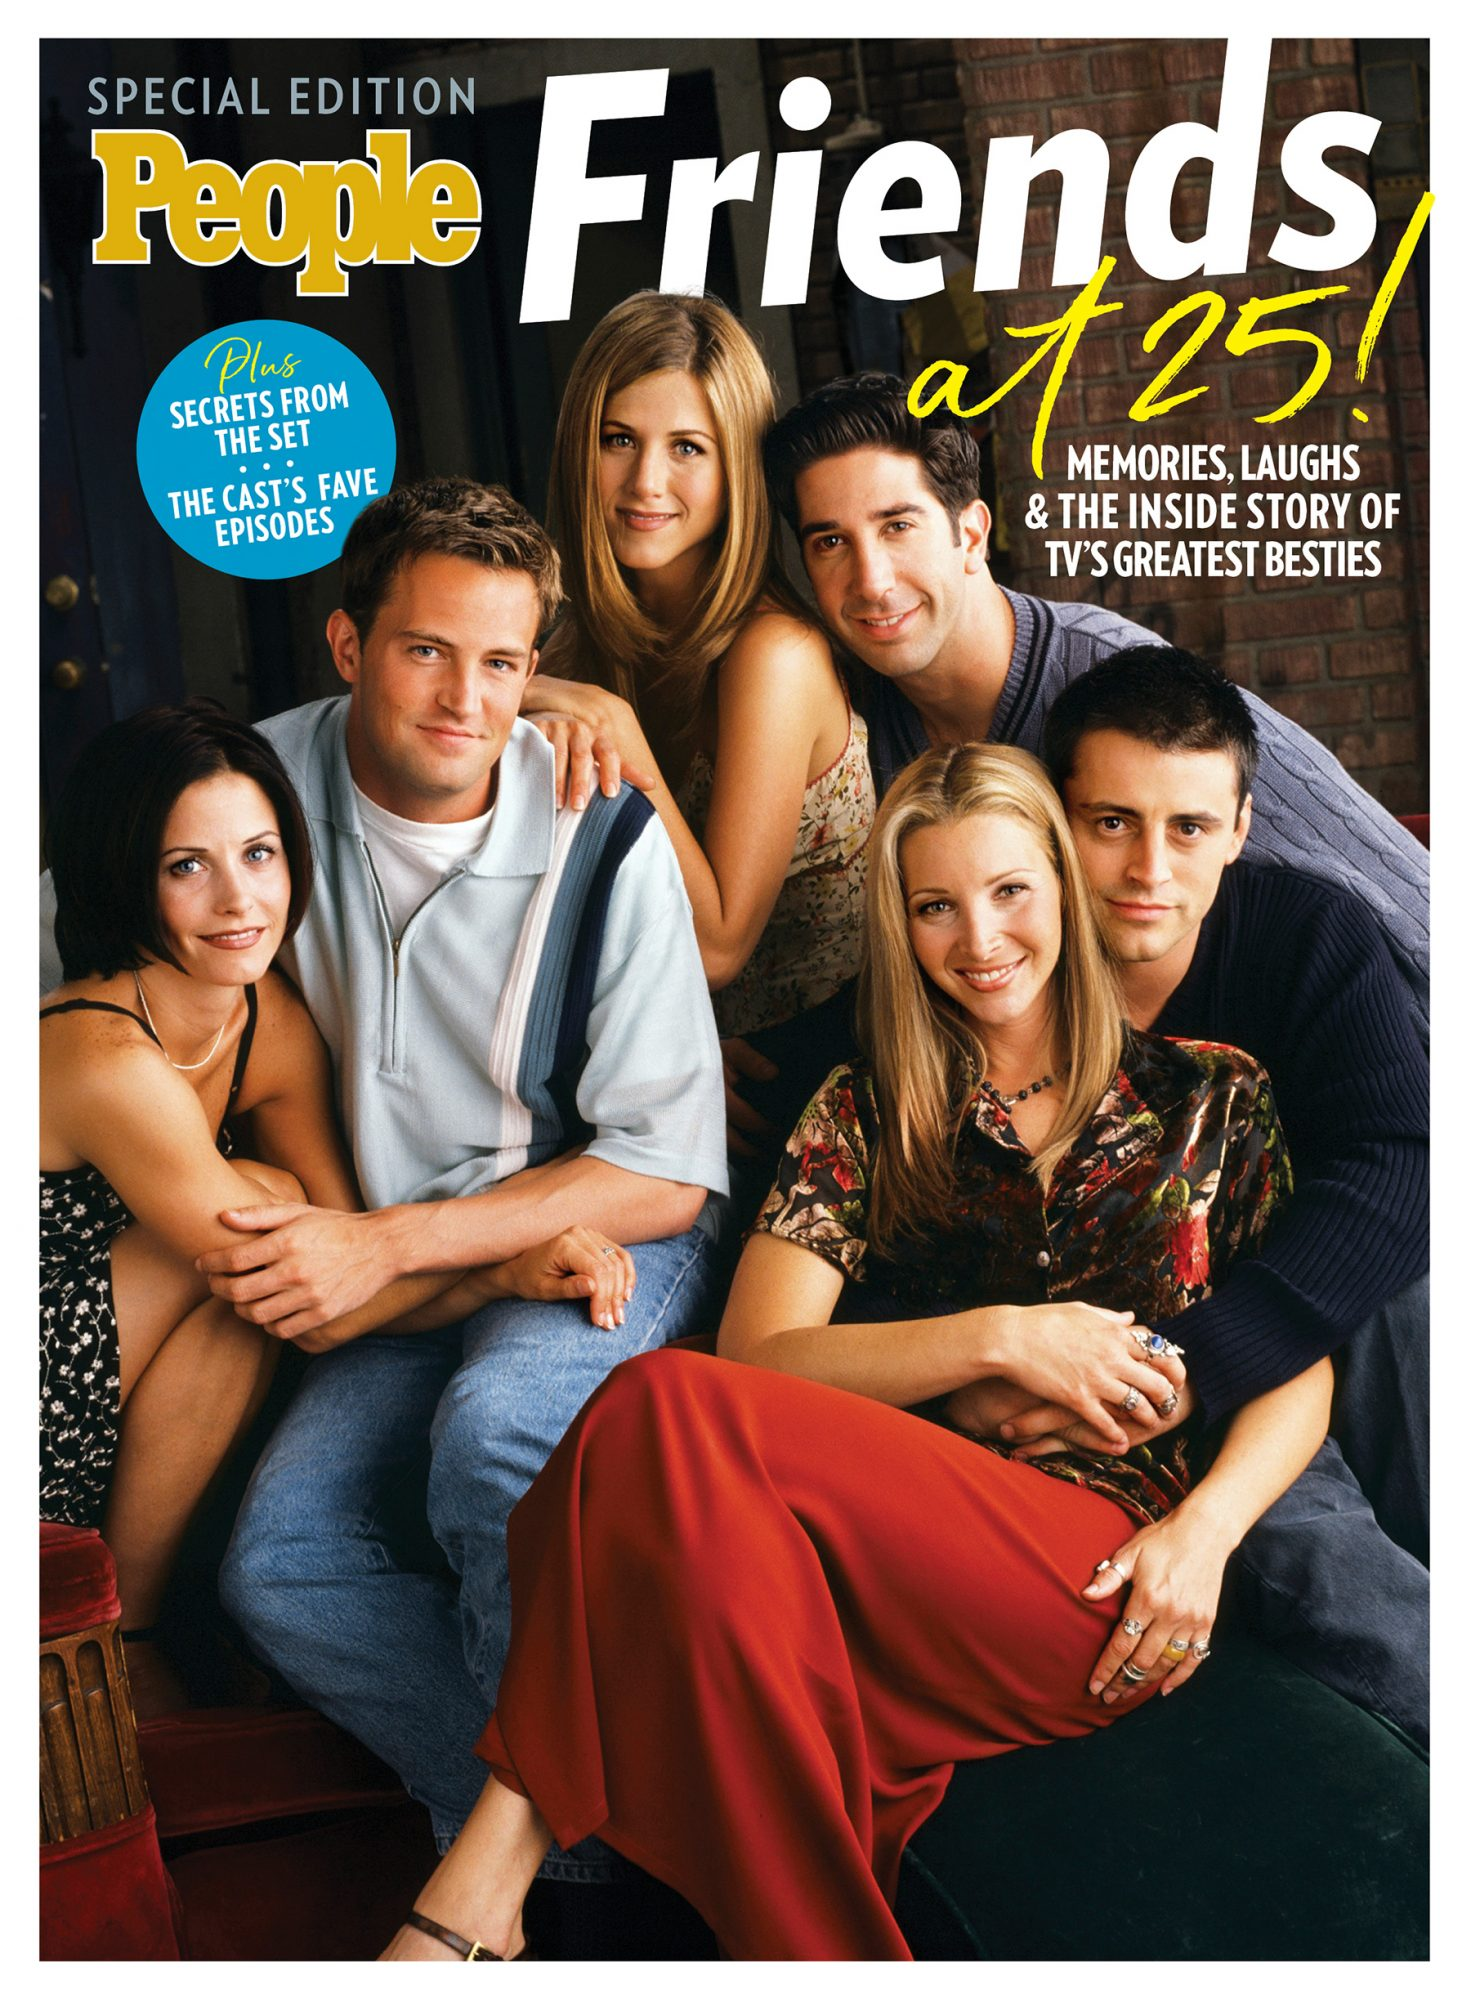 PEOPLE Special Edition: Friends at 25!